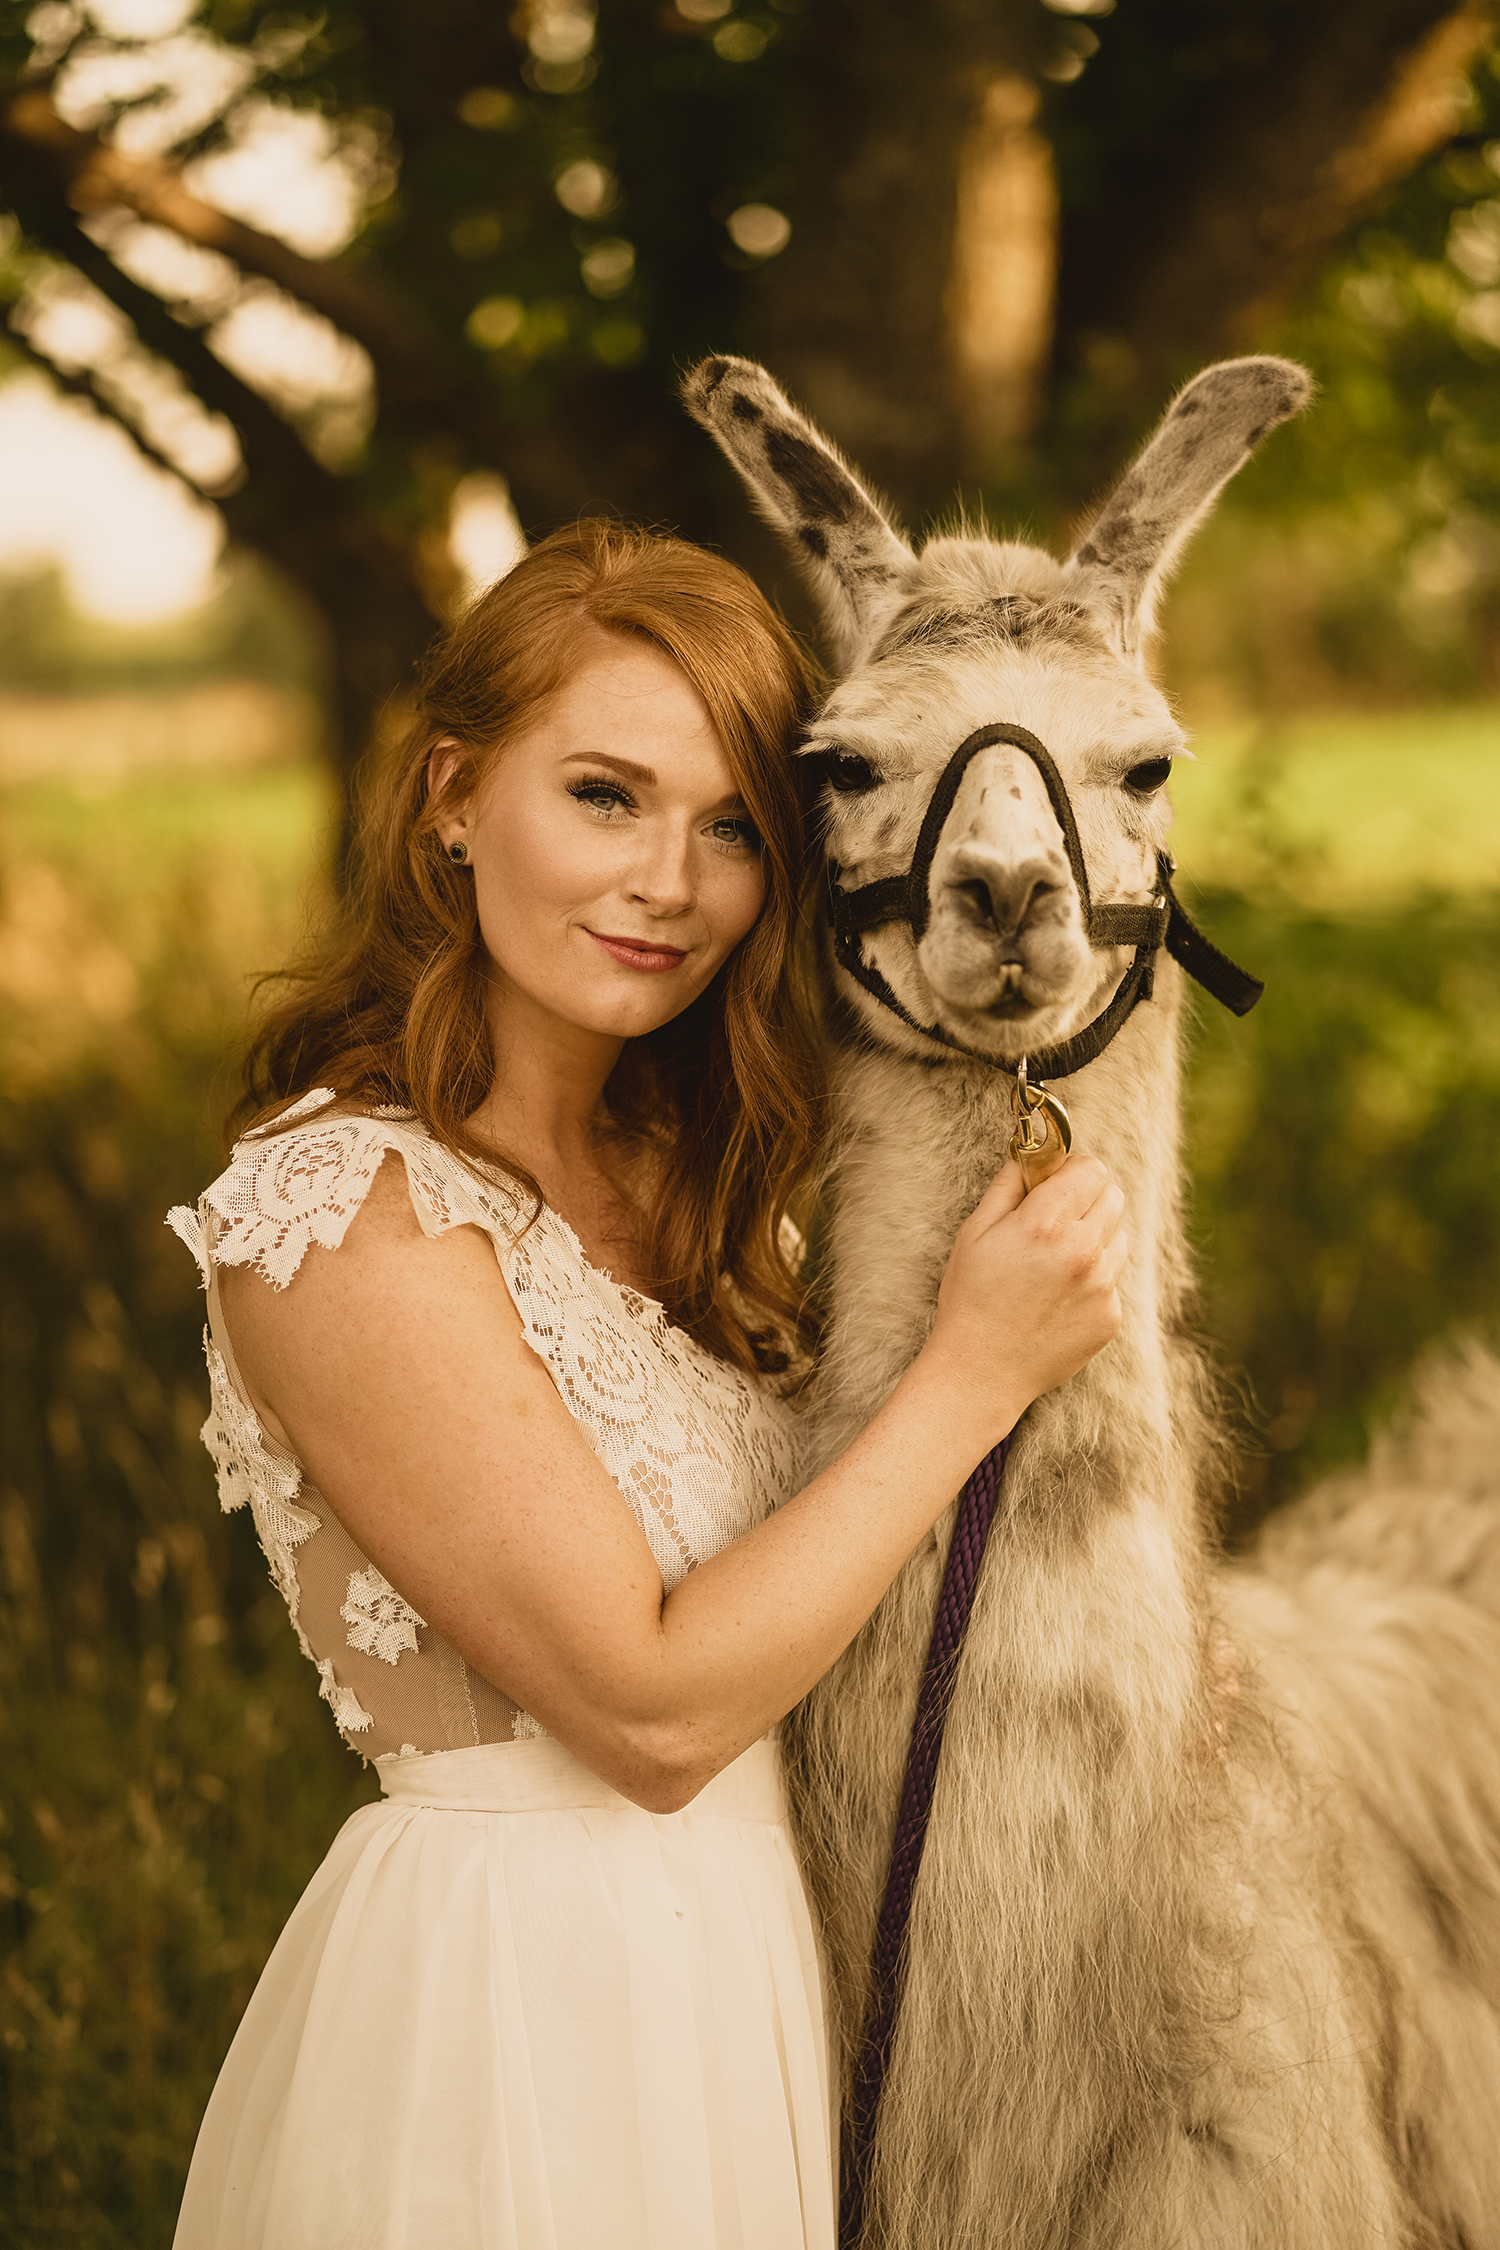 close-up-of-bride-with-llama-myrtle-mae-iris-aisle-dame-maiden-lavender-blue-floral-raelyn-ramey-photography.jpg